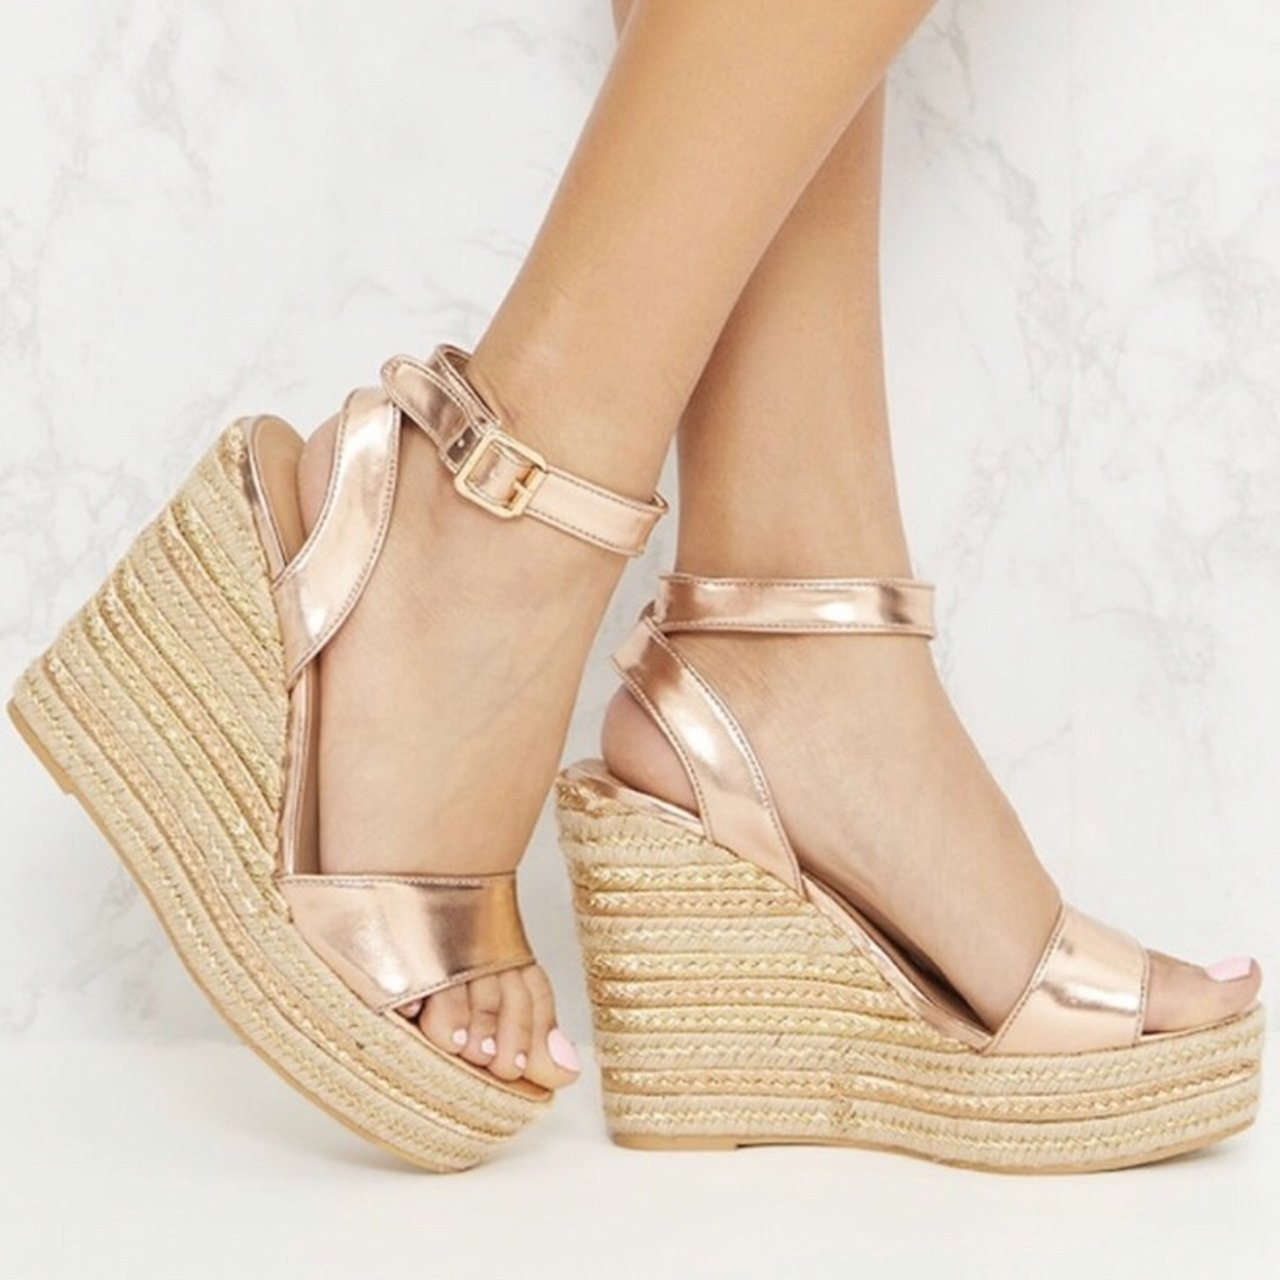 uk availability online for sale popular stores Rose gold wedges from pretty little thing Worn once size 5 - Depop